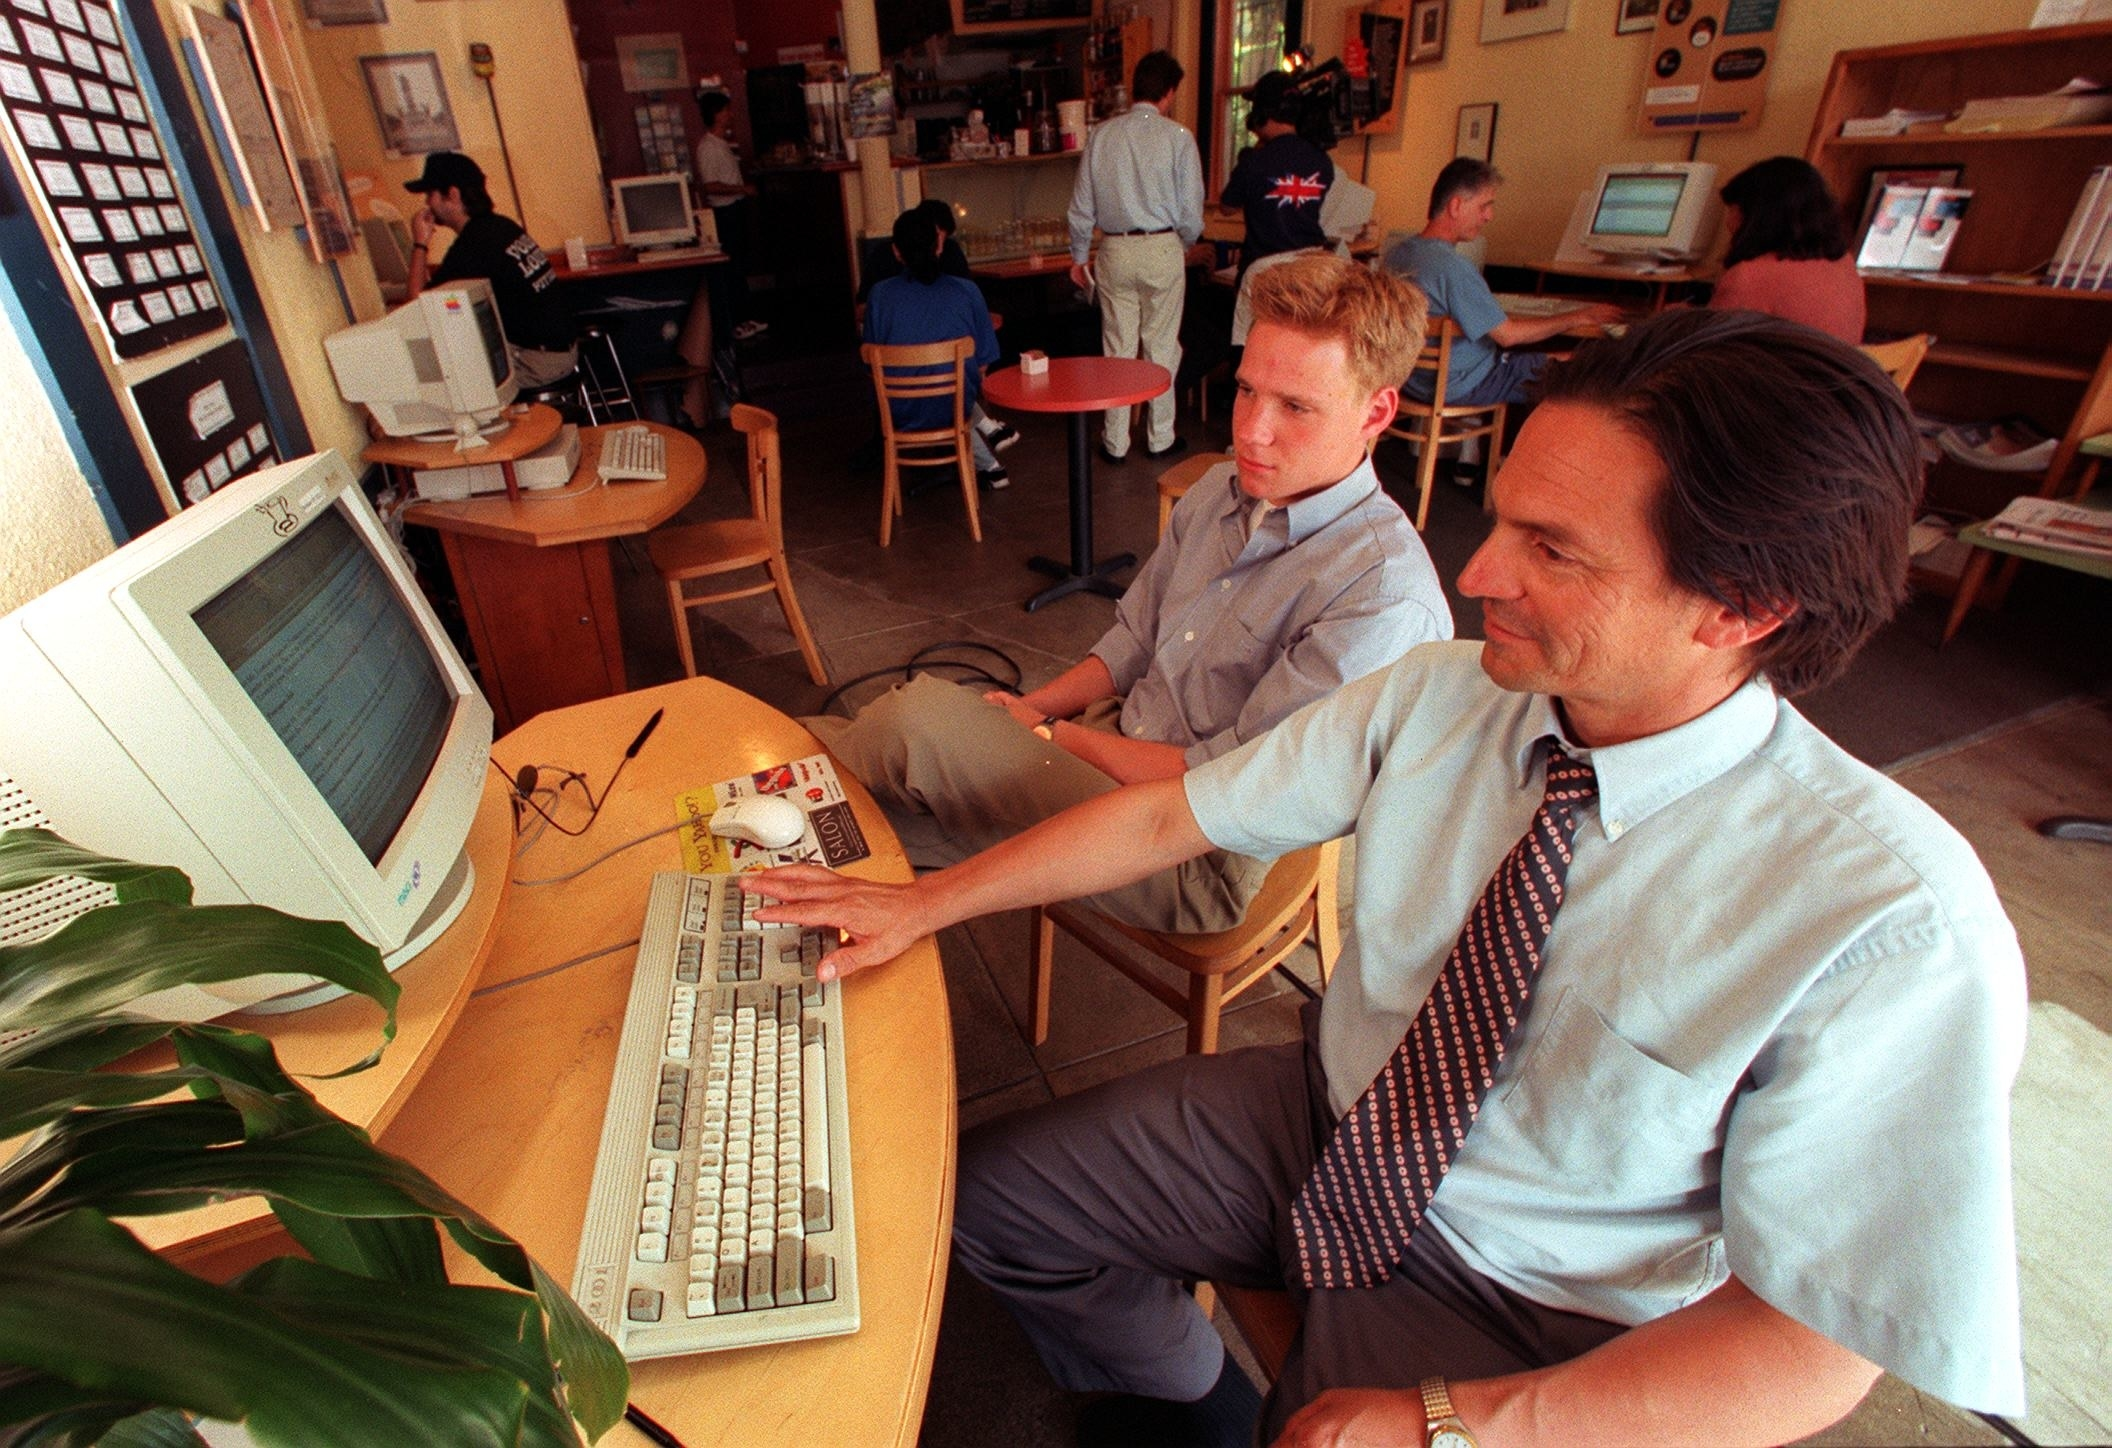 Two guys sitting in an internet cafe looking at a desktop PC